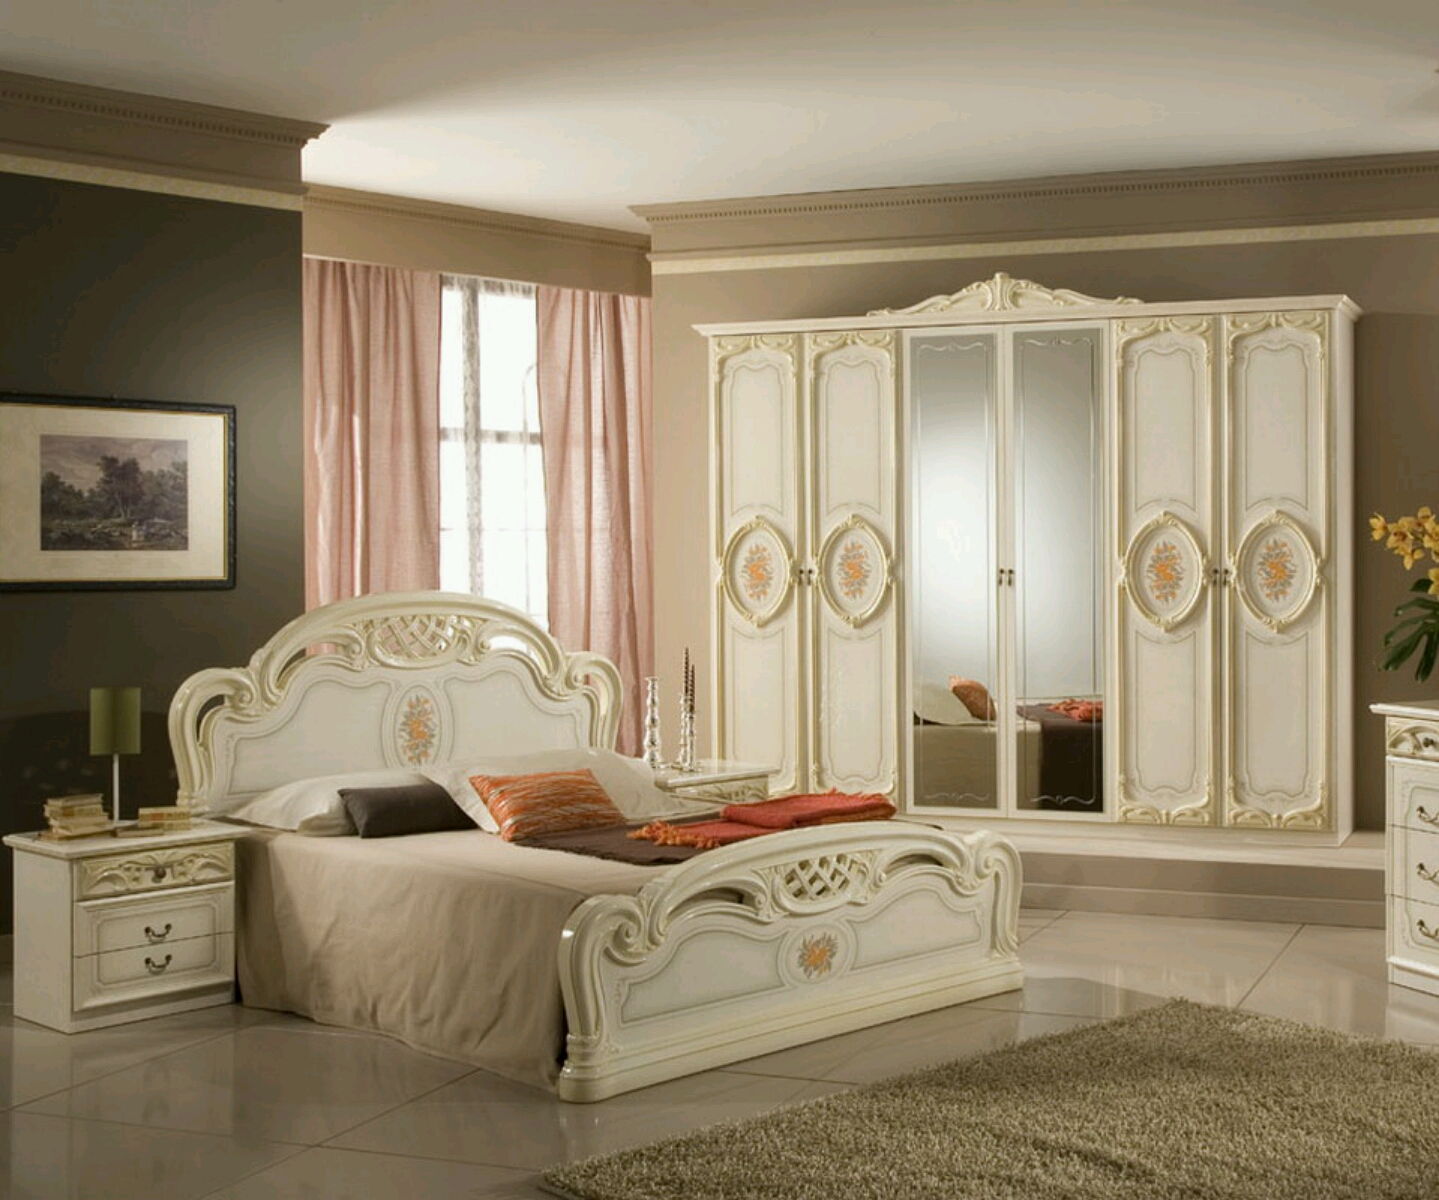 Modern luxury bedroom furniture designs ideas vintage for Design of bed furniture